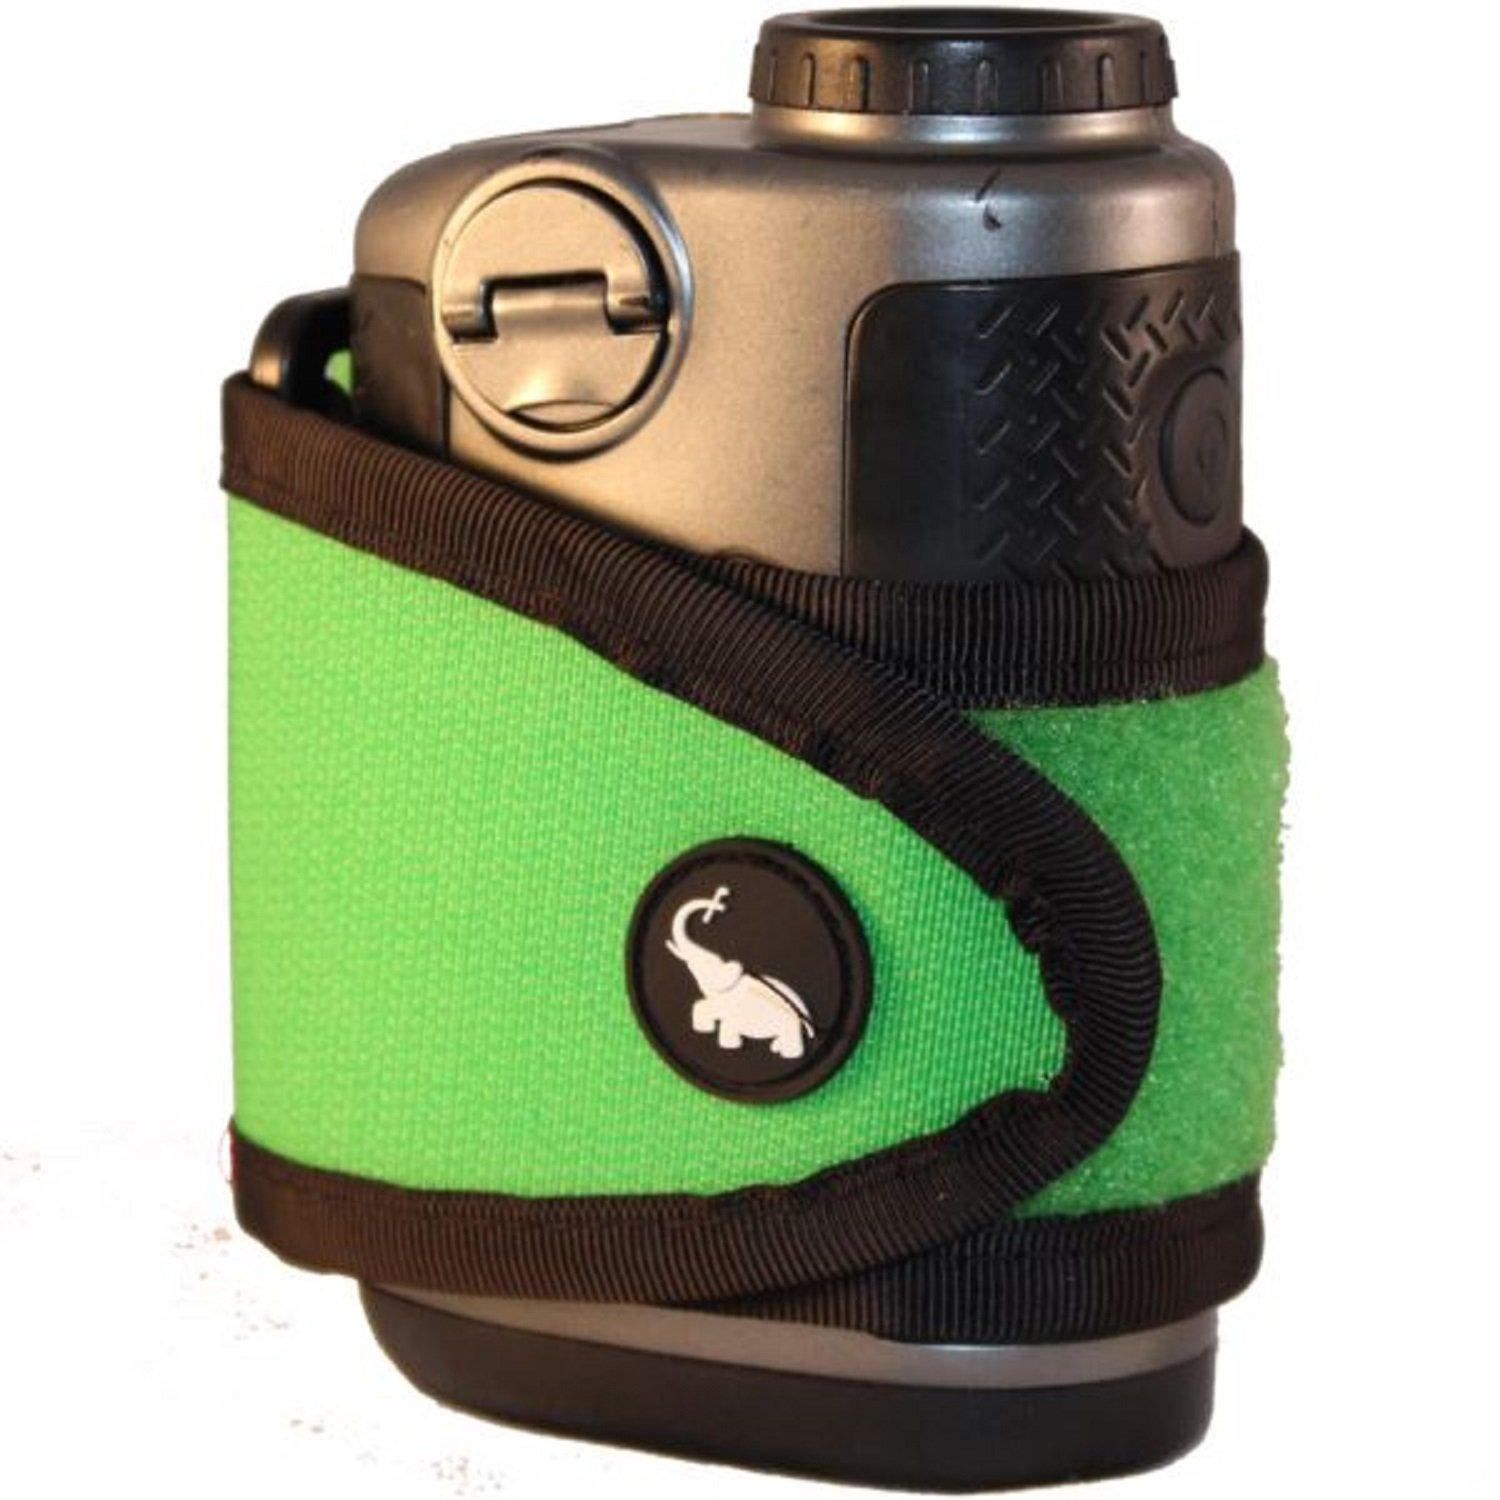 Monument Golf 1003GR Stick It Classic Series Magnetic Rangefinder Strap, Green by Monument Golf